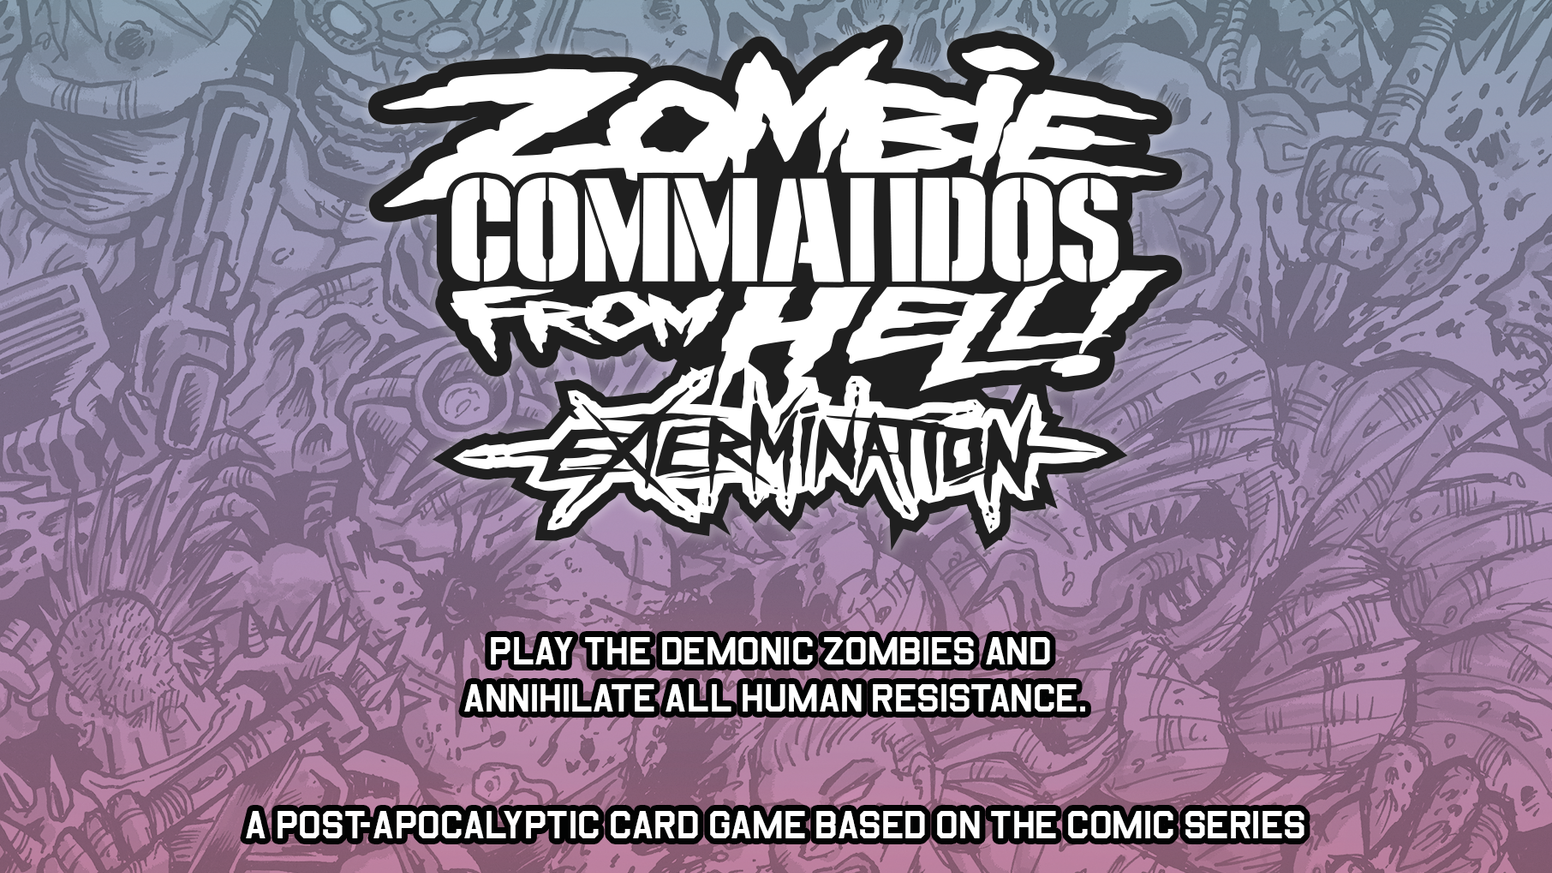 A co-op card game in which you play the zombies seeking to eliminate humans in a post-apocalyptic setting!